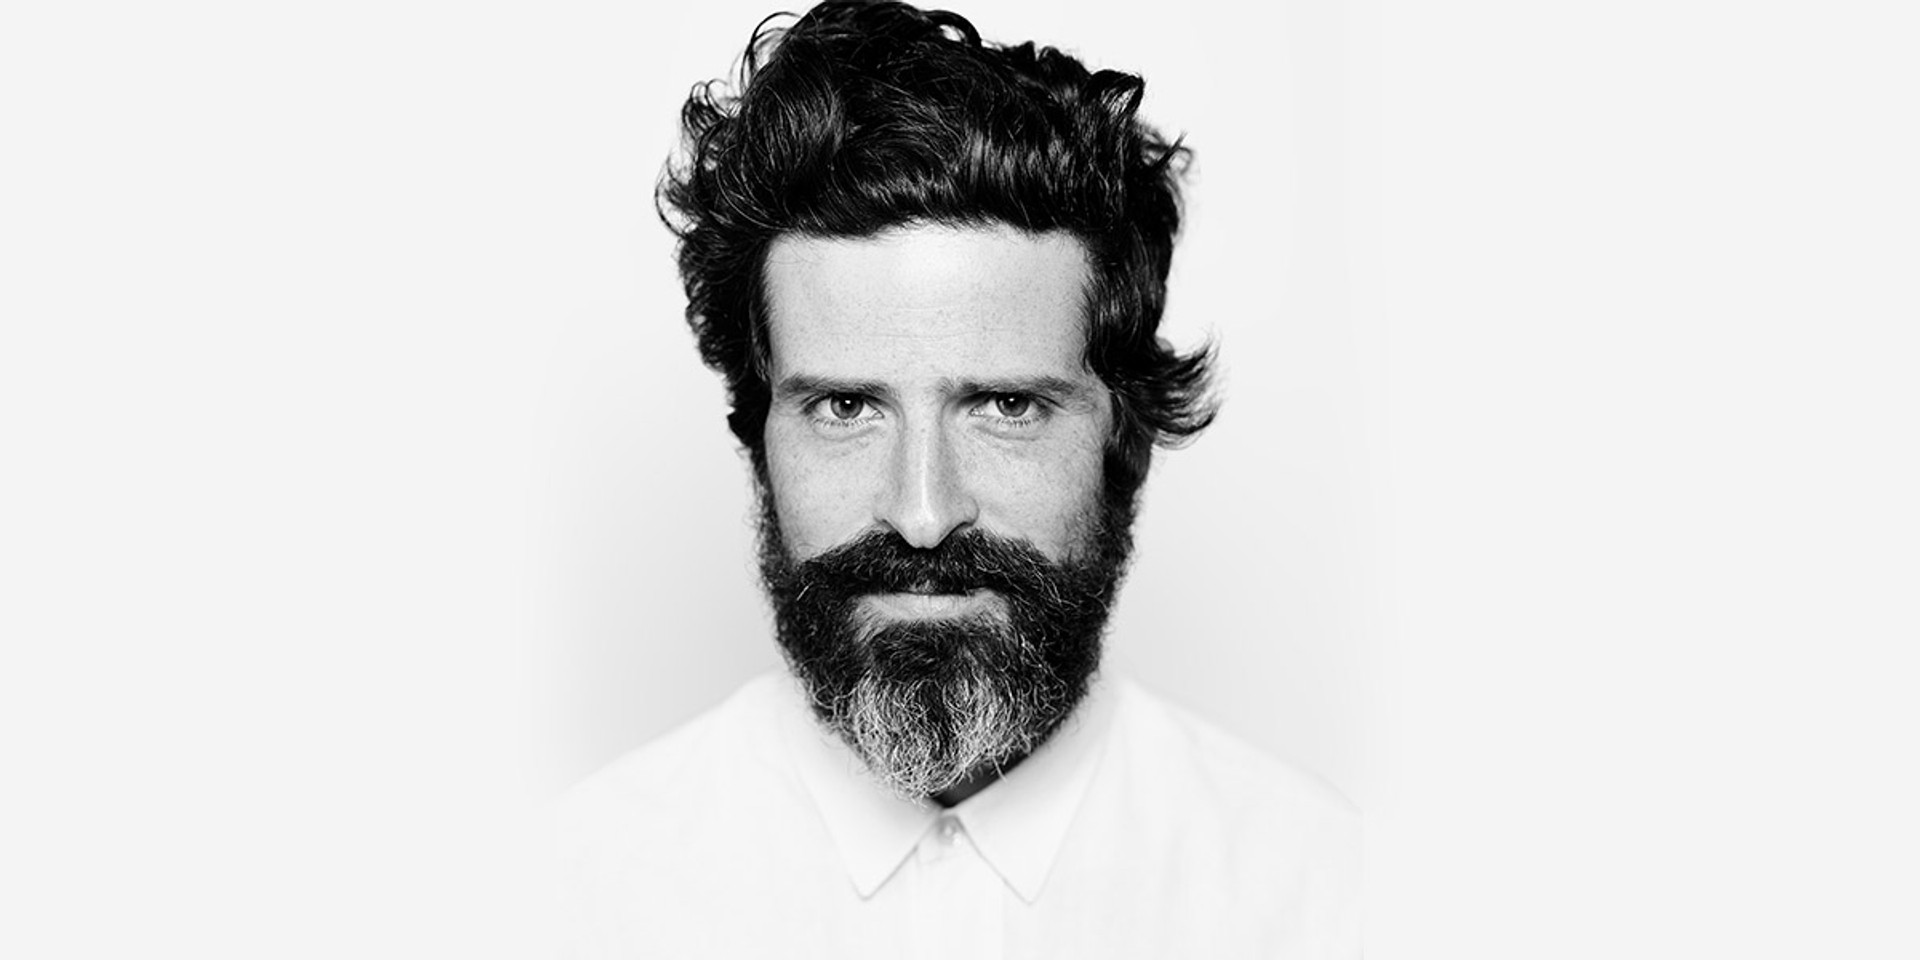 """""""My real job is to just go, get lost in the city or in nature, and listen"""": An interview with Devendra Banhart"""